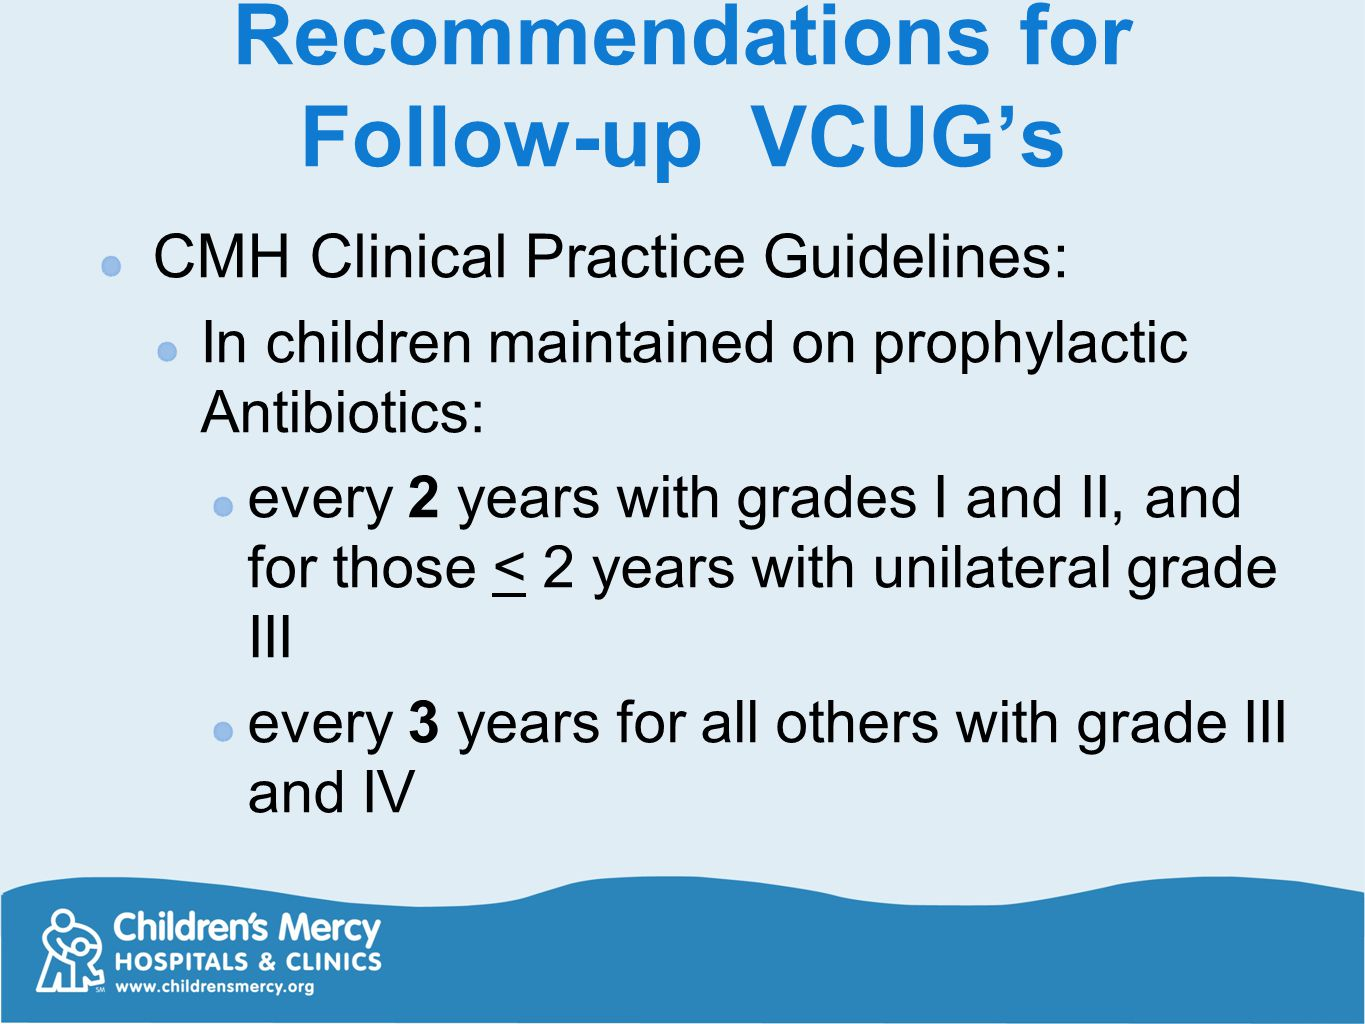 Recommendations for Follow-up VCUG's